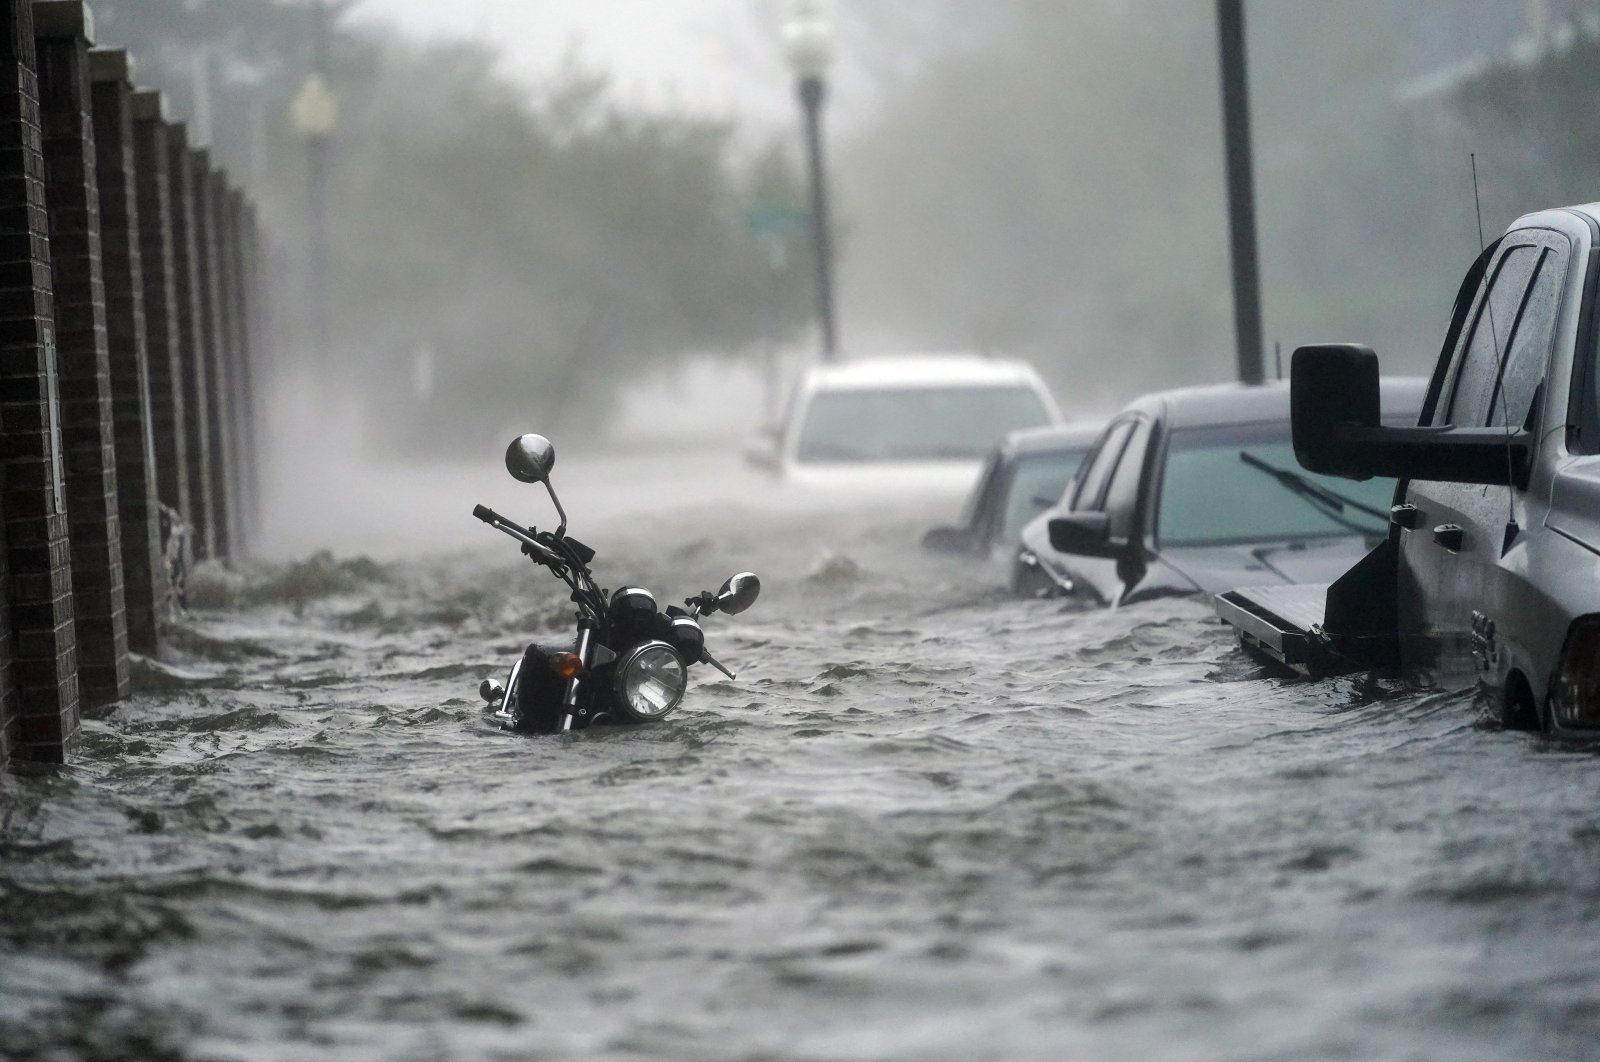 Floodwaters move on the street, Wednesday, Sept. 16, 2020, in Pensacola, Fla. (AP Photo)